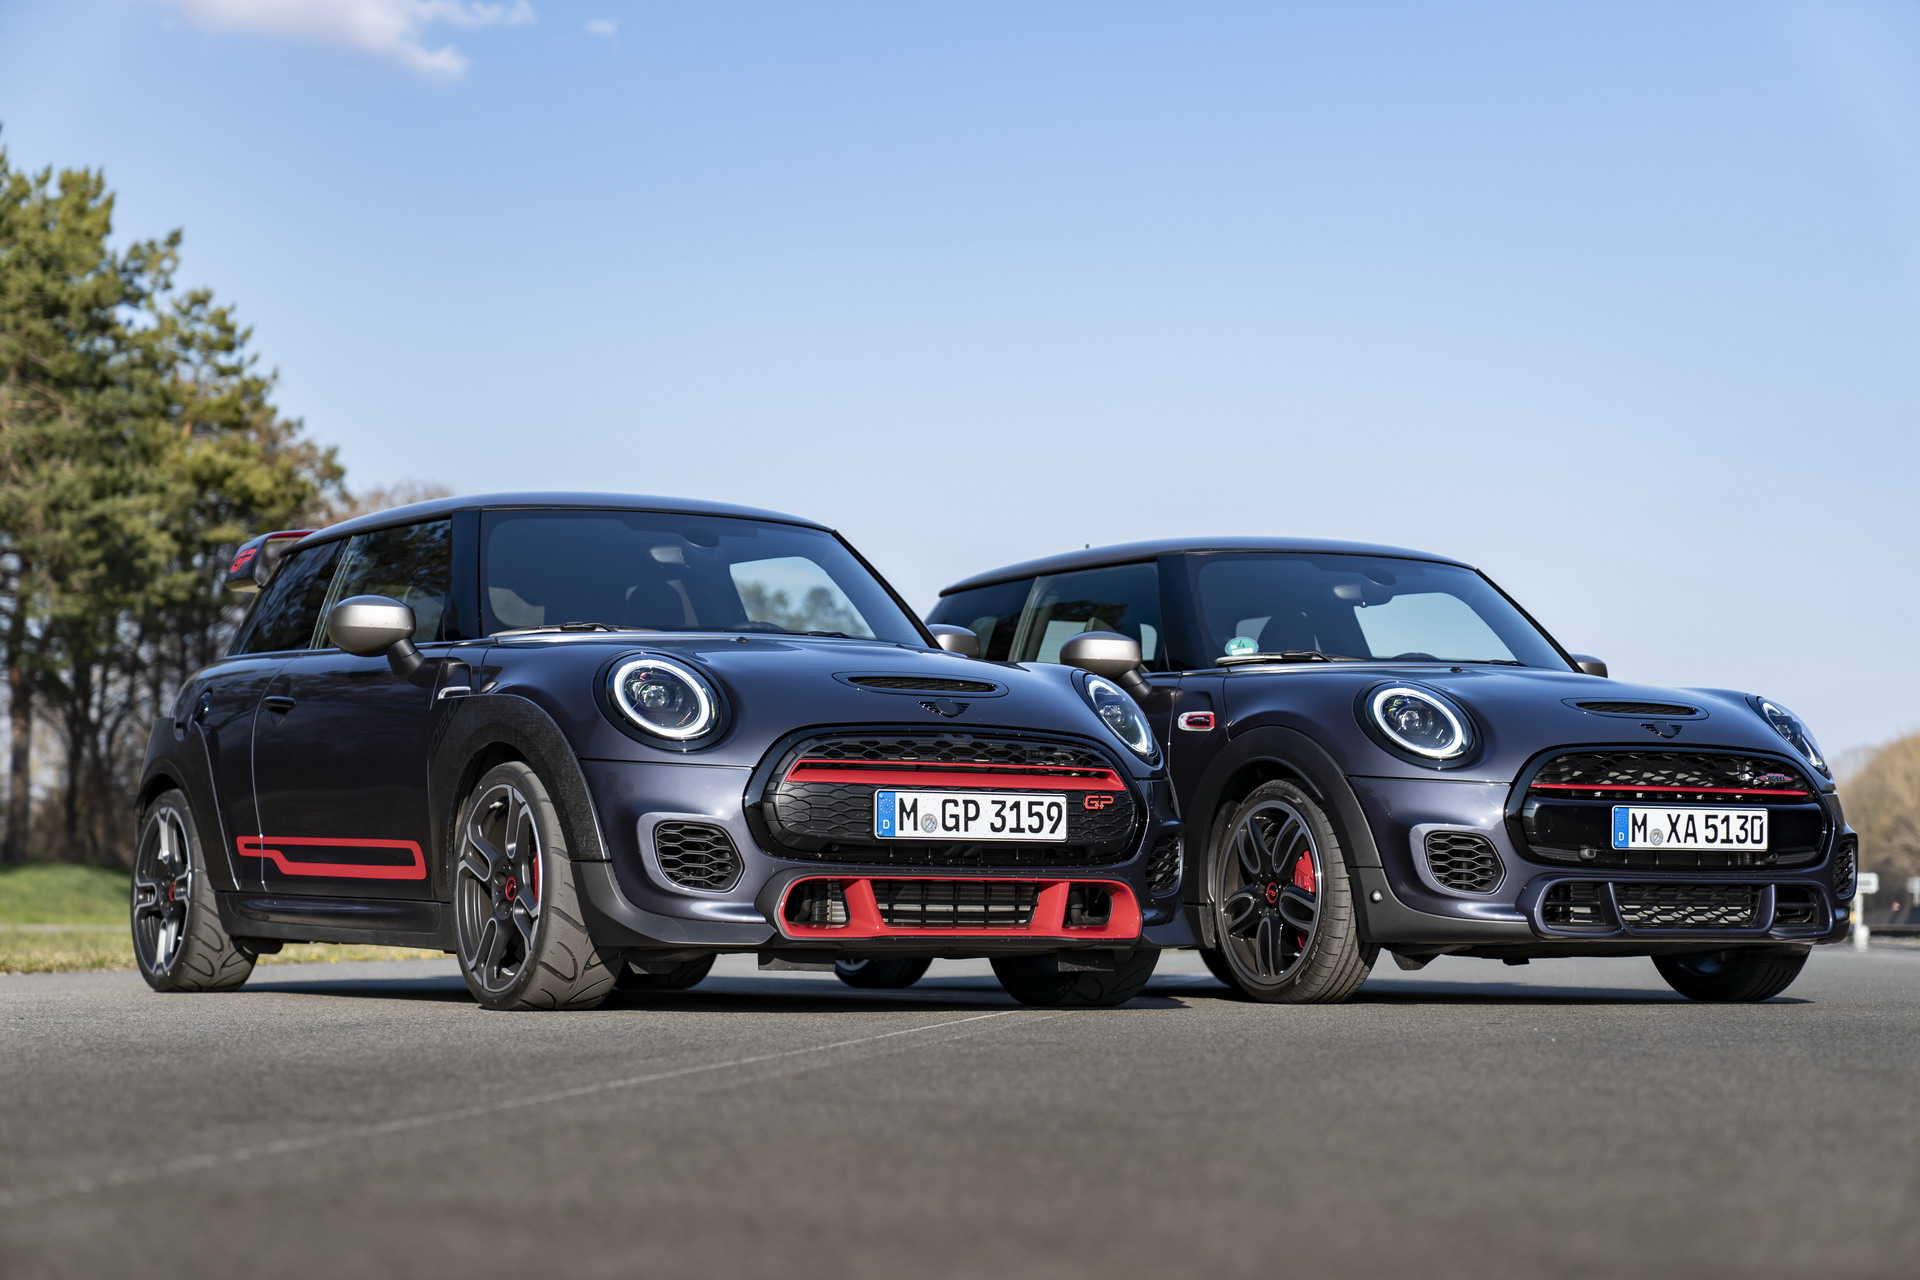 The new John Cooper Works GP Pack 8